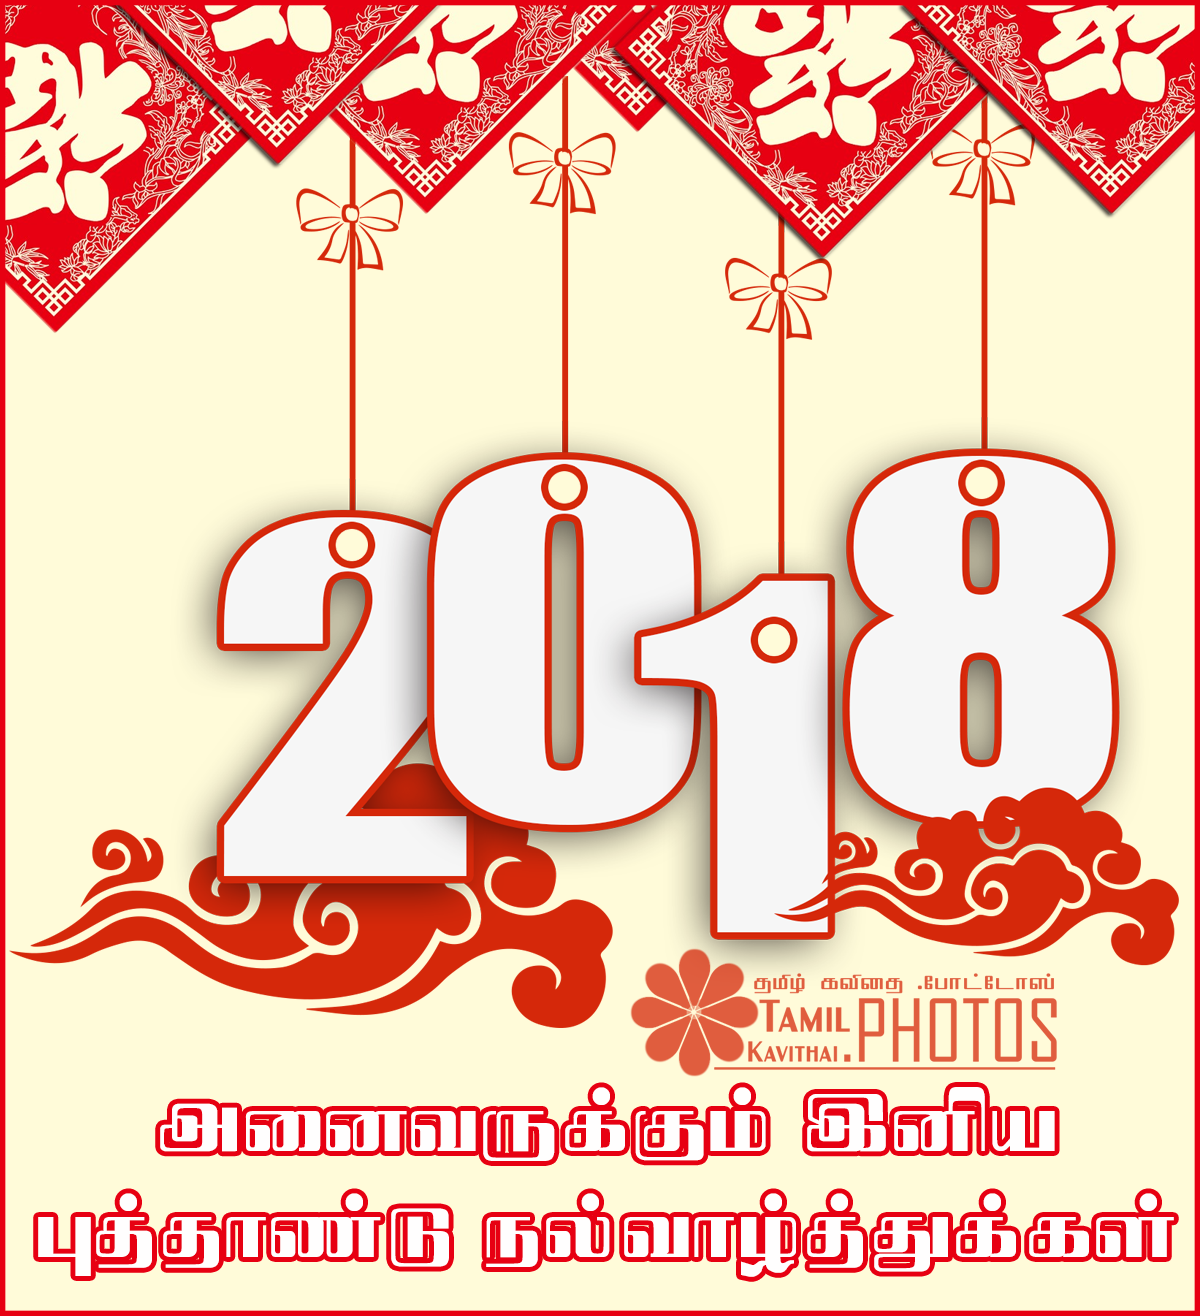 2018 new year wishes in tamil images tamil kavithai photos